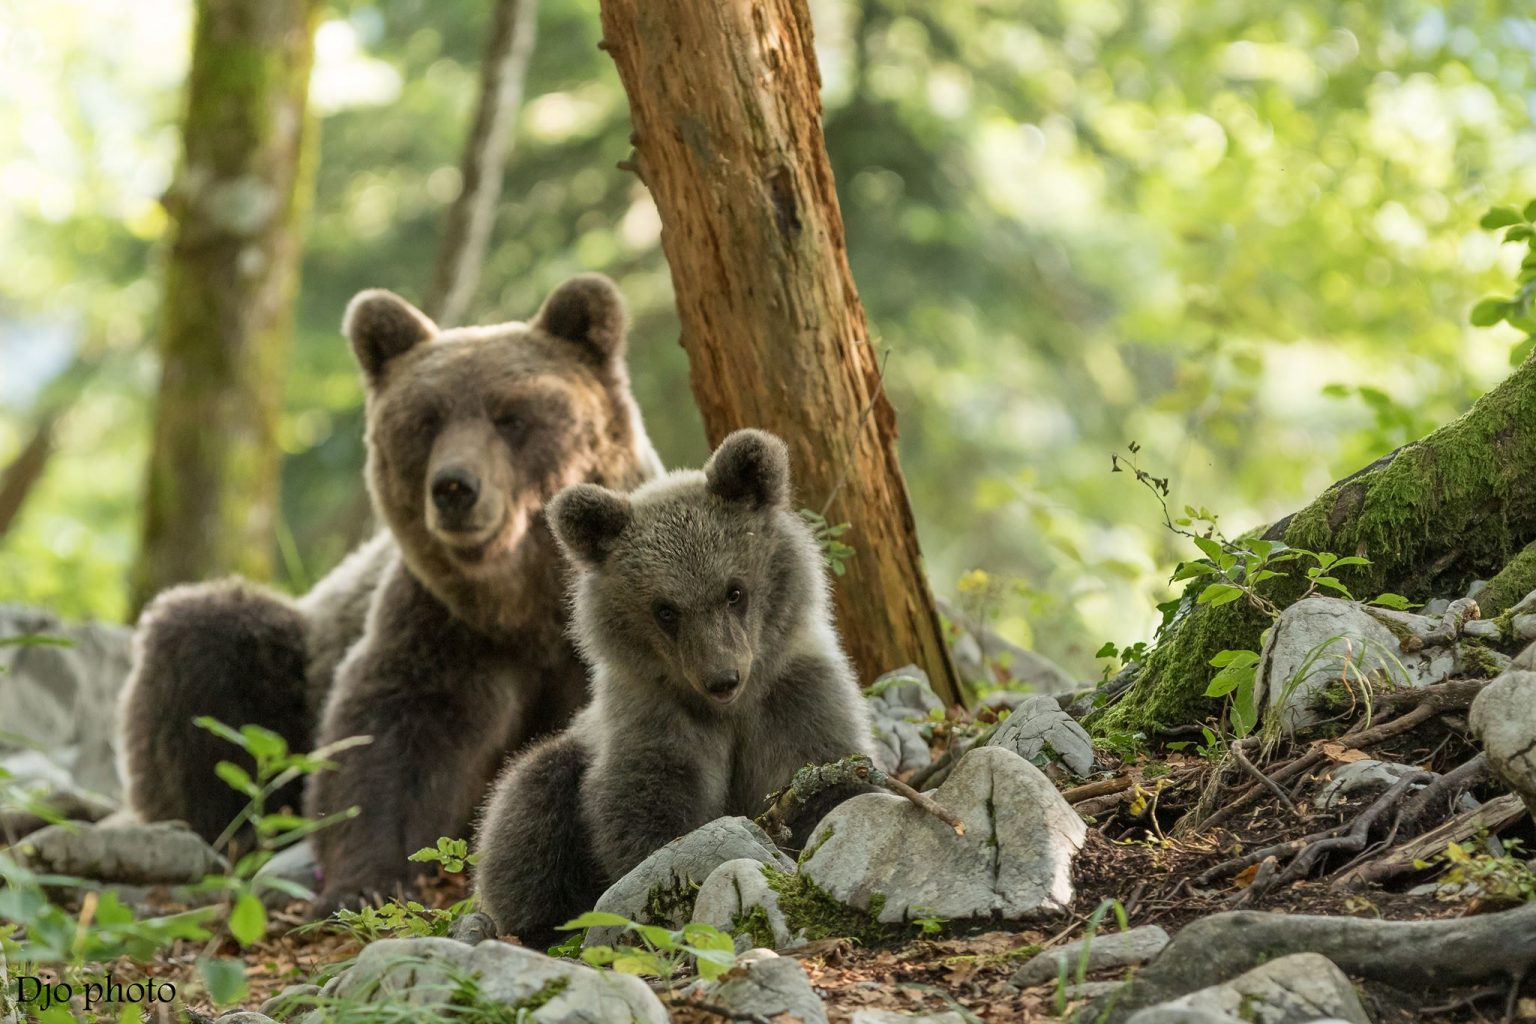 bear watching tours in Slovenia